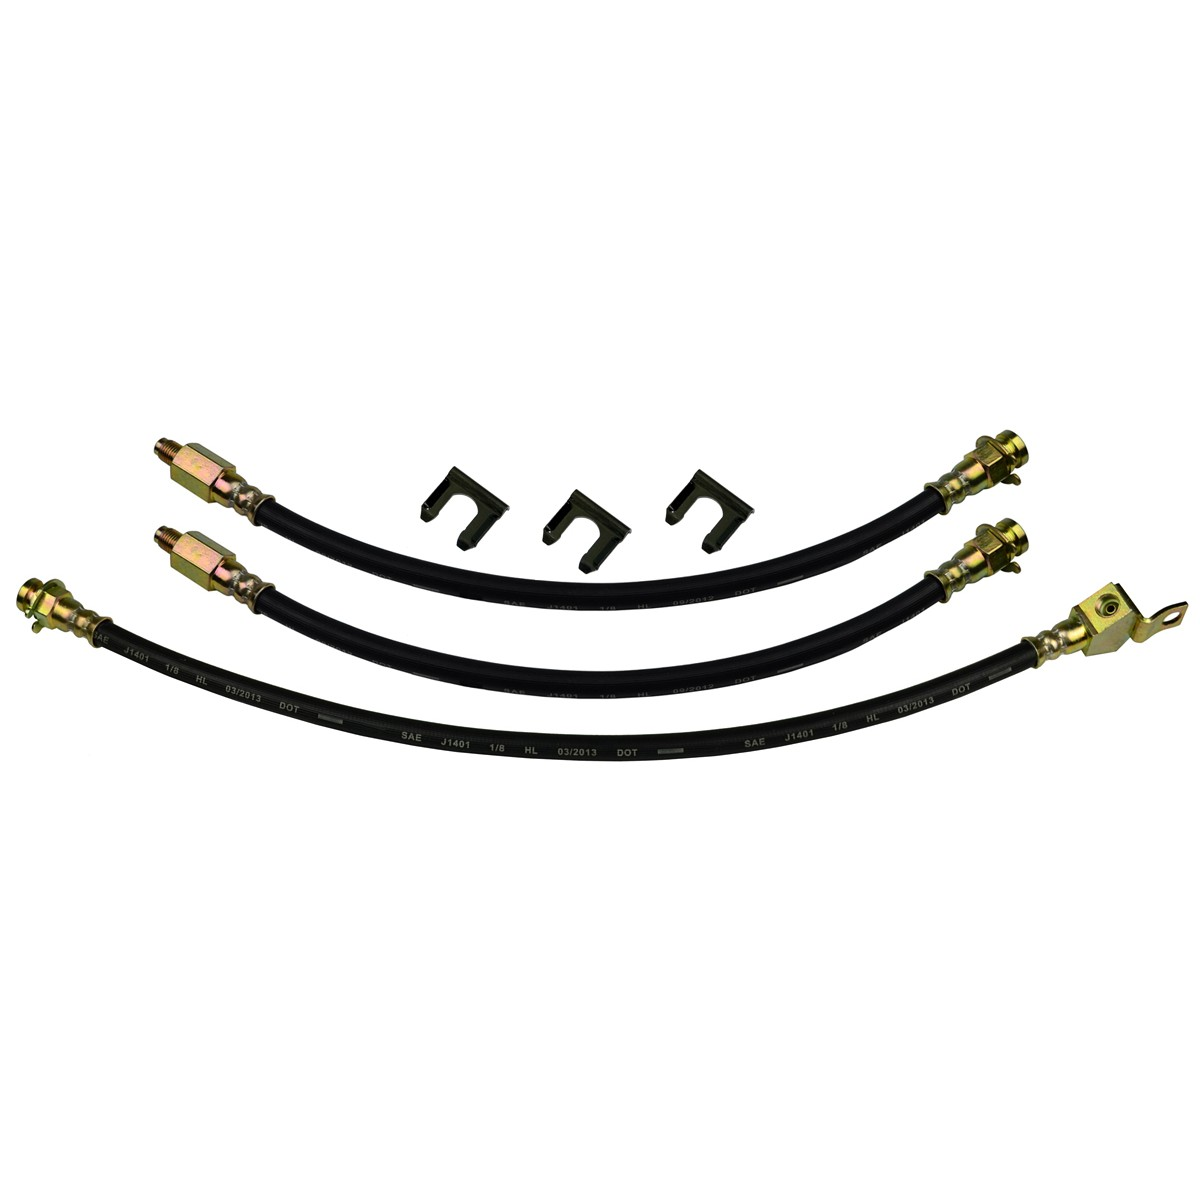 64 Ford Thunderbird Front Rear Drum Brake Rubber Flex Hose Line Set Kit